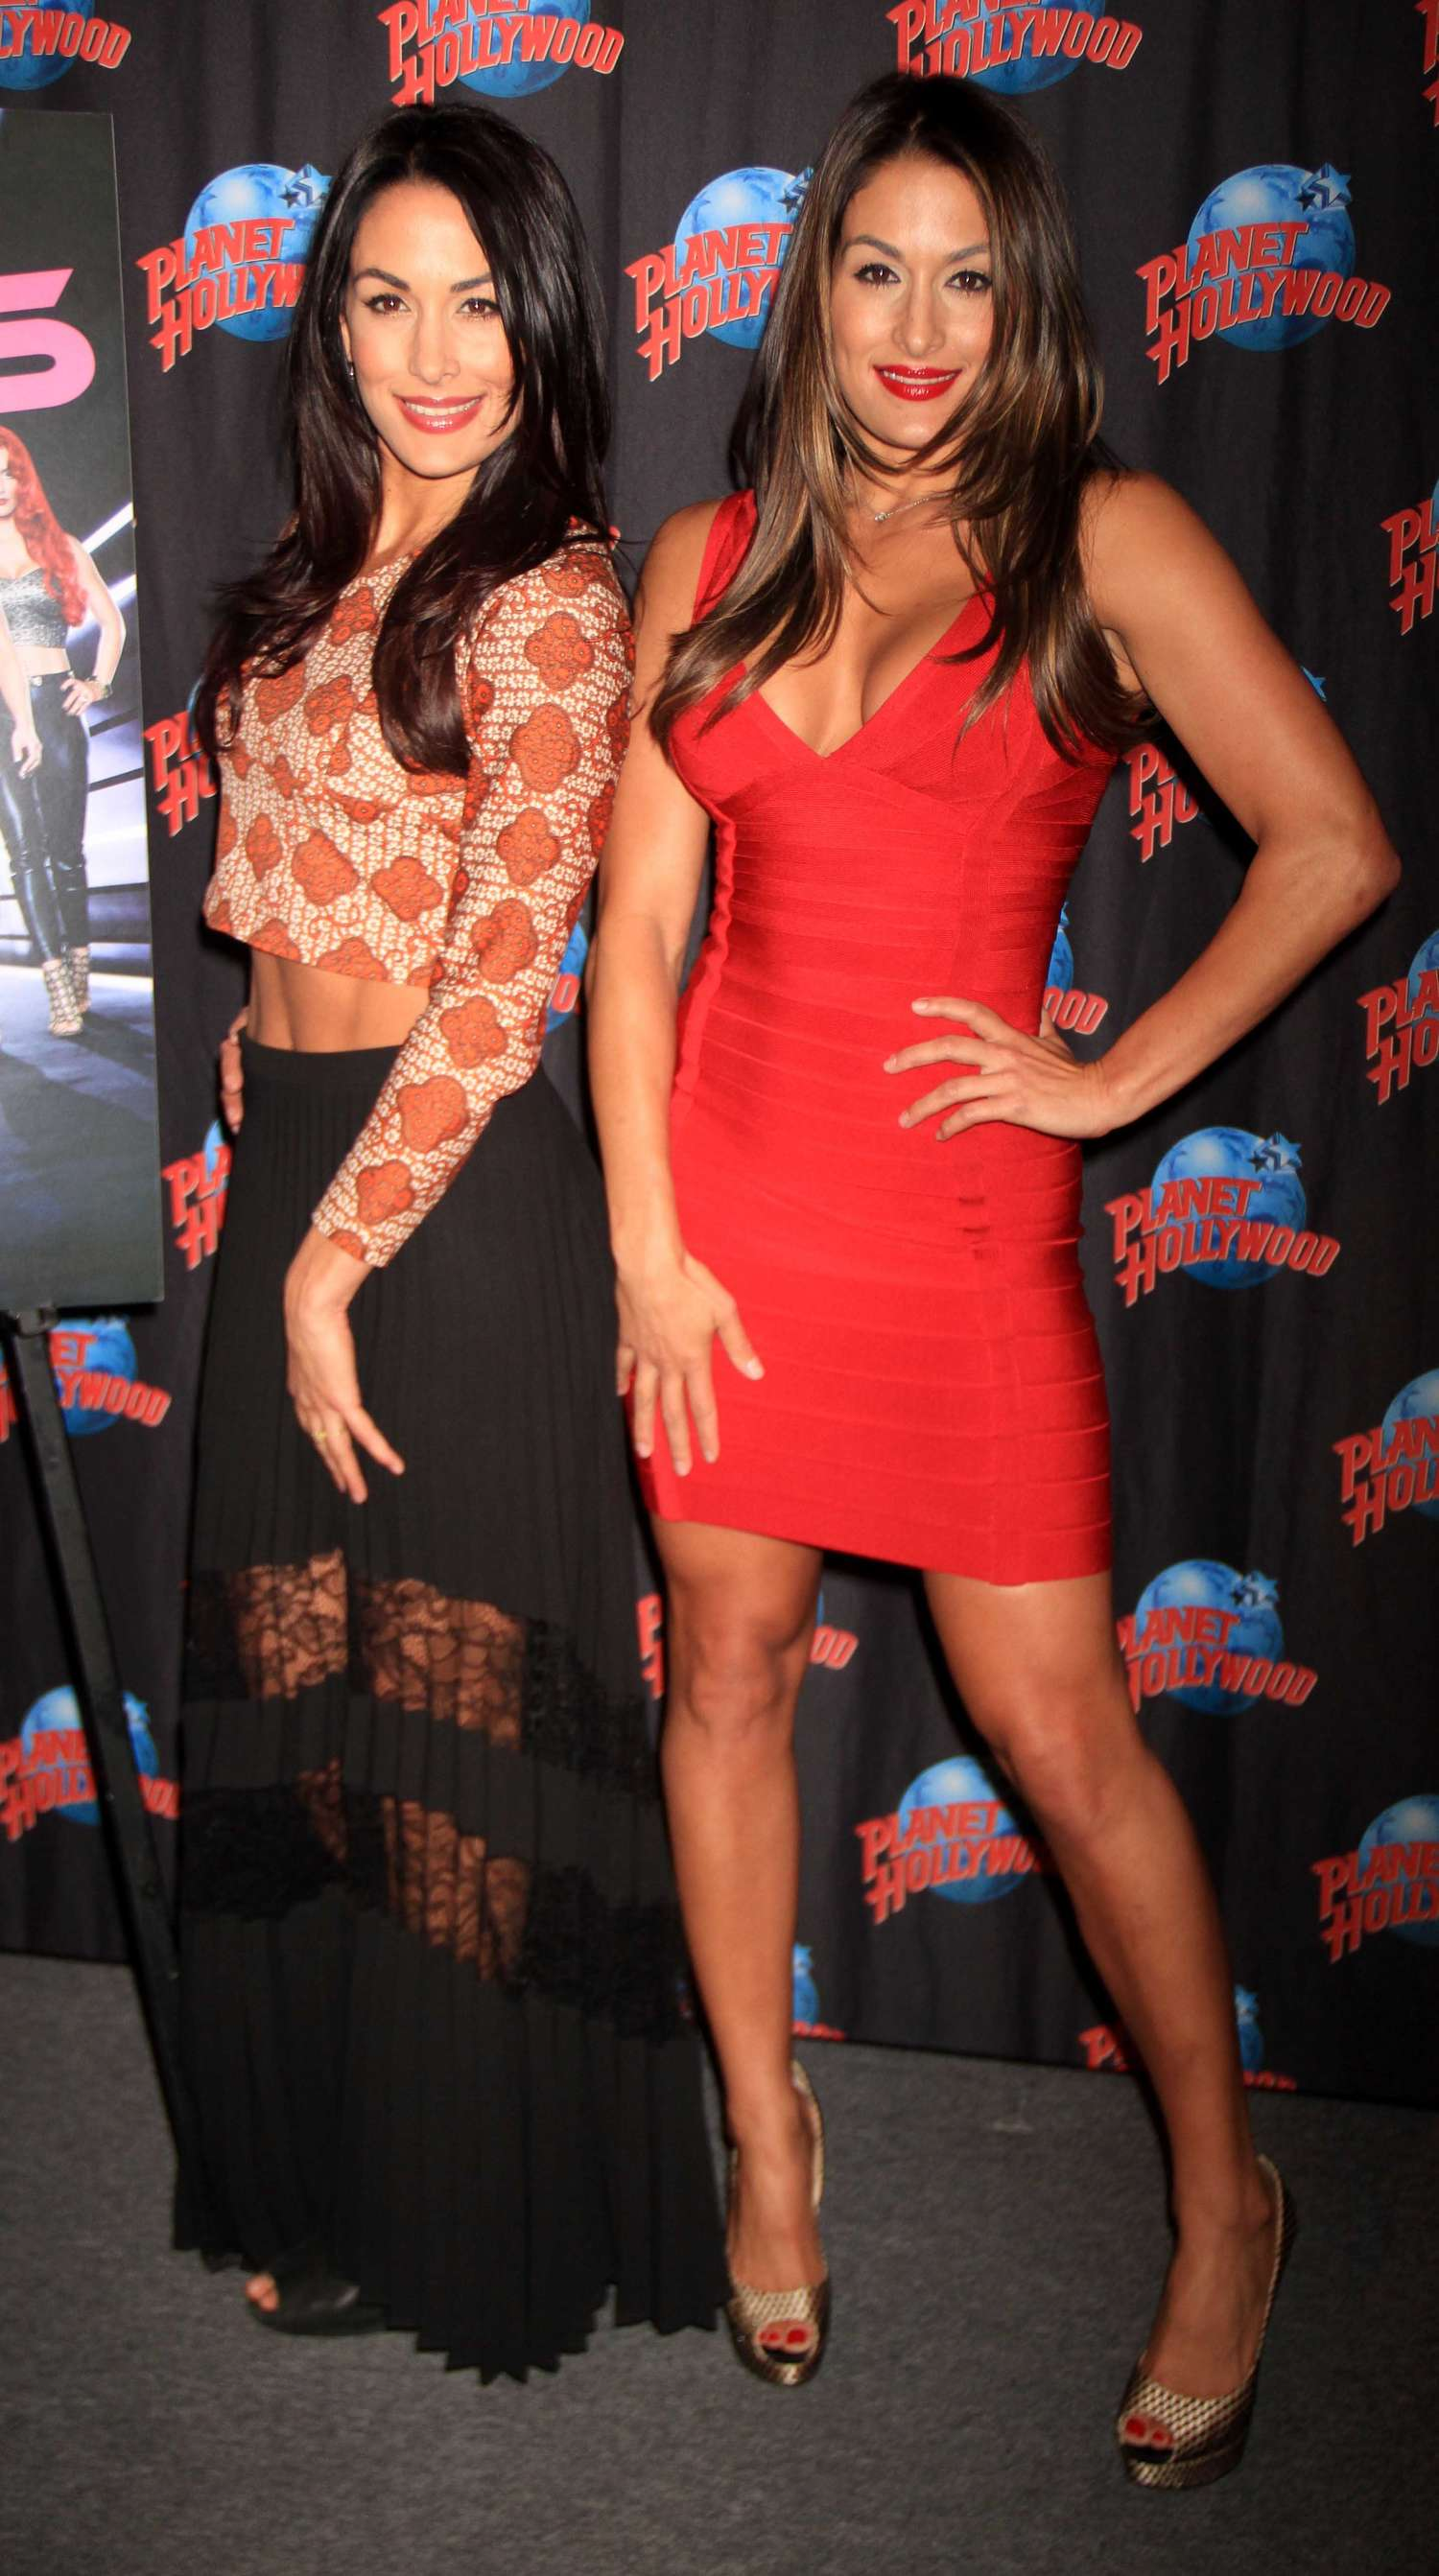 Nikki and brie bell planet hollywood hall of fame 07 full size